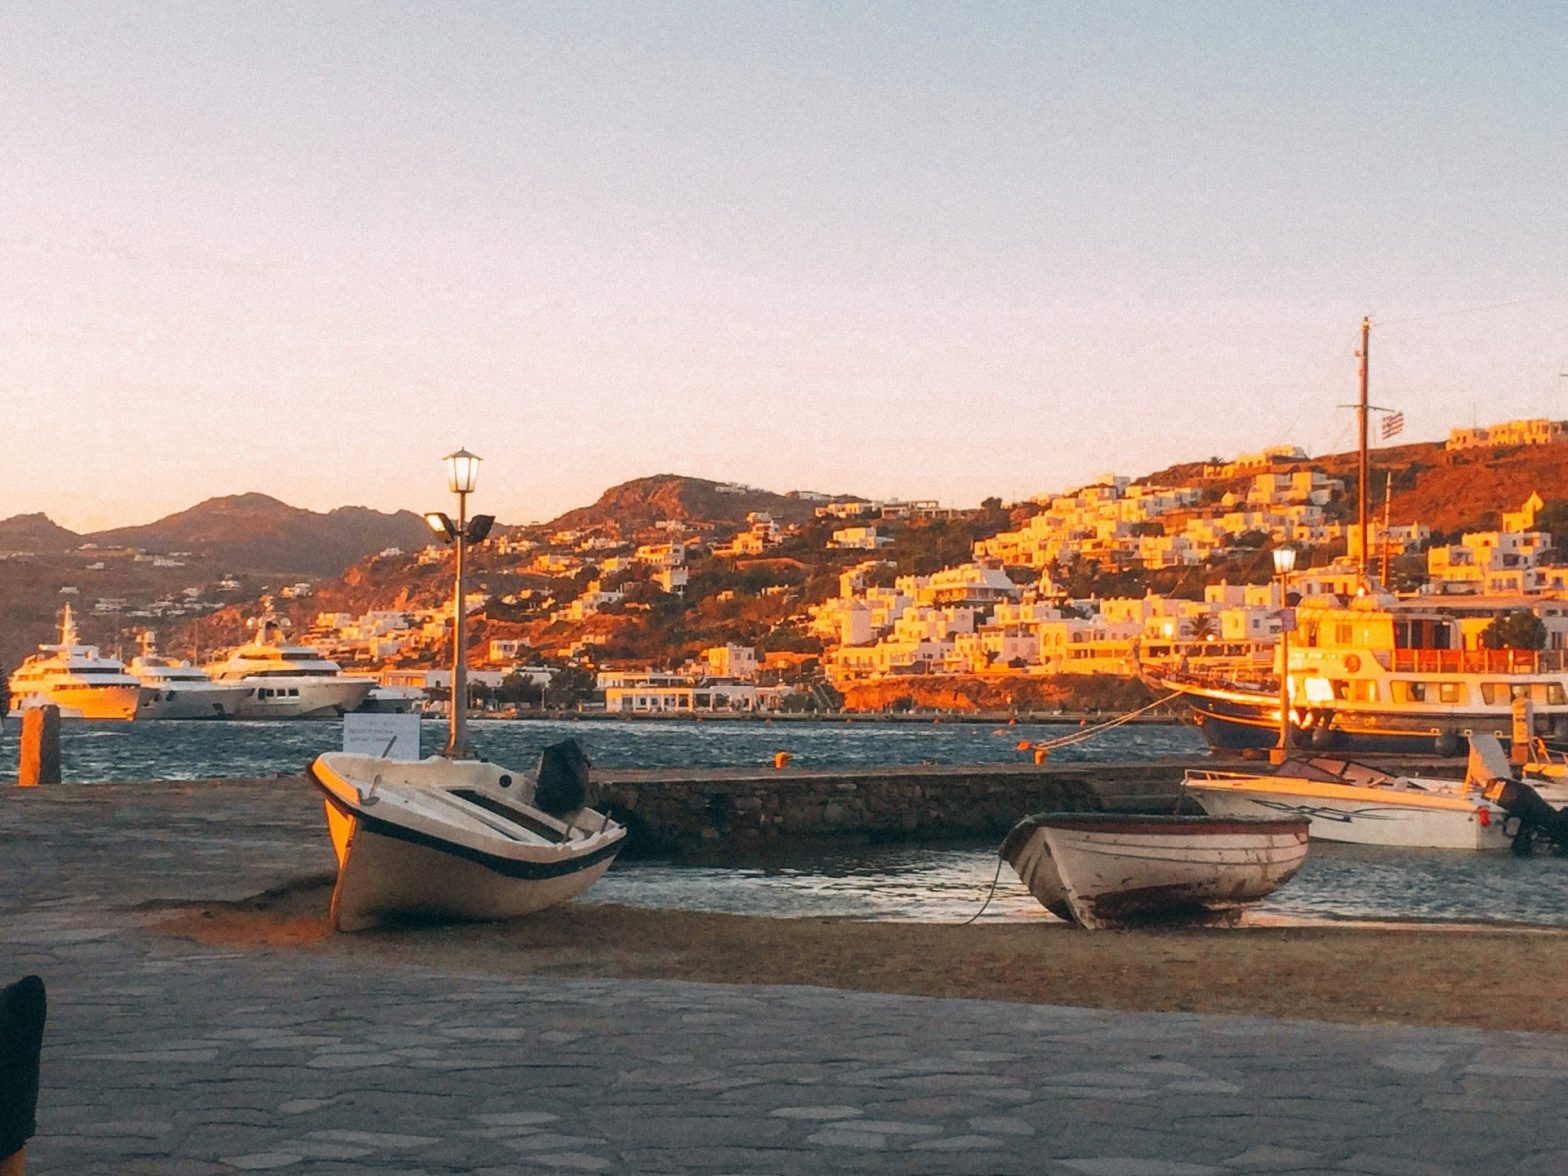 View from dinner at Captains in Mykonos Greece. Places to visit.